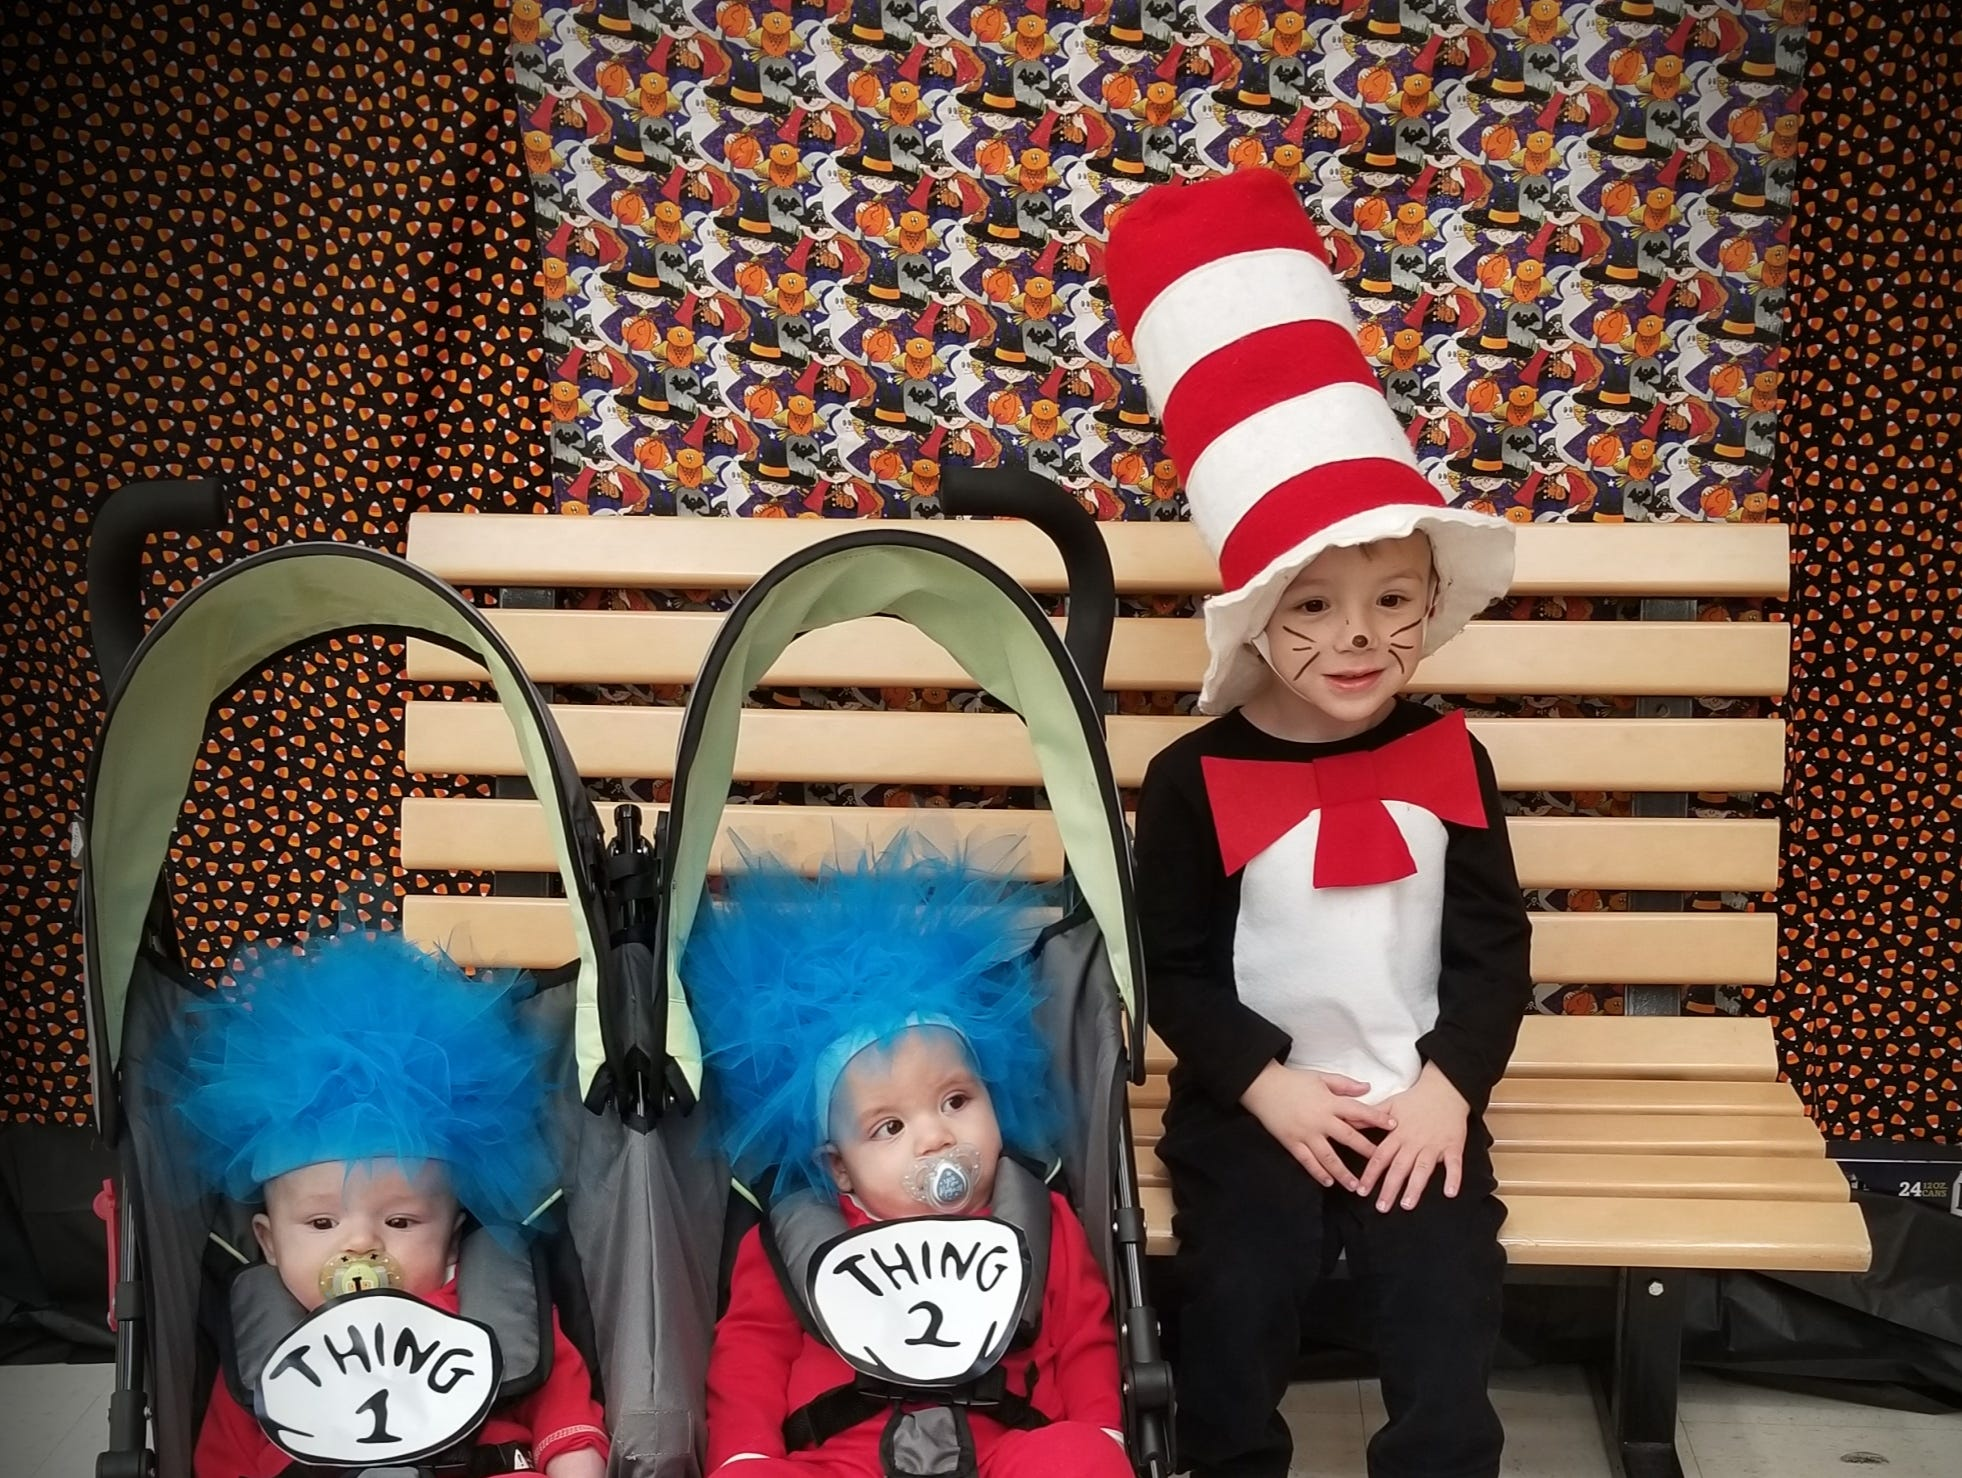 Ethan Witt, 3, dressed as the Cat in the Hat, is from Maribel, son of Ben and Bridget Witt. Asher Witt, 5 months, dressed as Thing 2, is from Maribel, son of Ben and Bridget Witt. Isak Lindgren, dressed as Thing 1, is from Maribel, son of Karl and Michelle Lindgren.